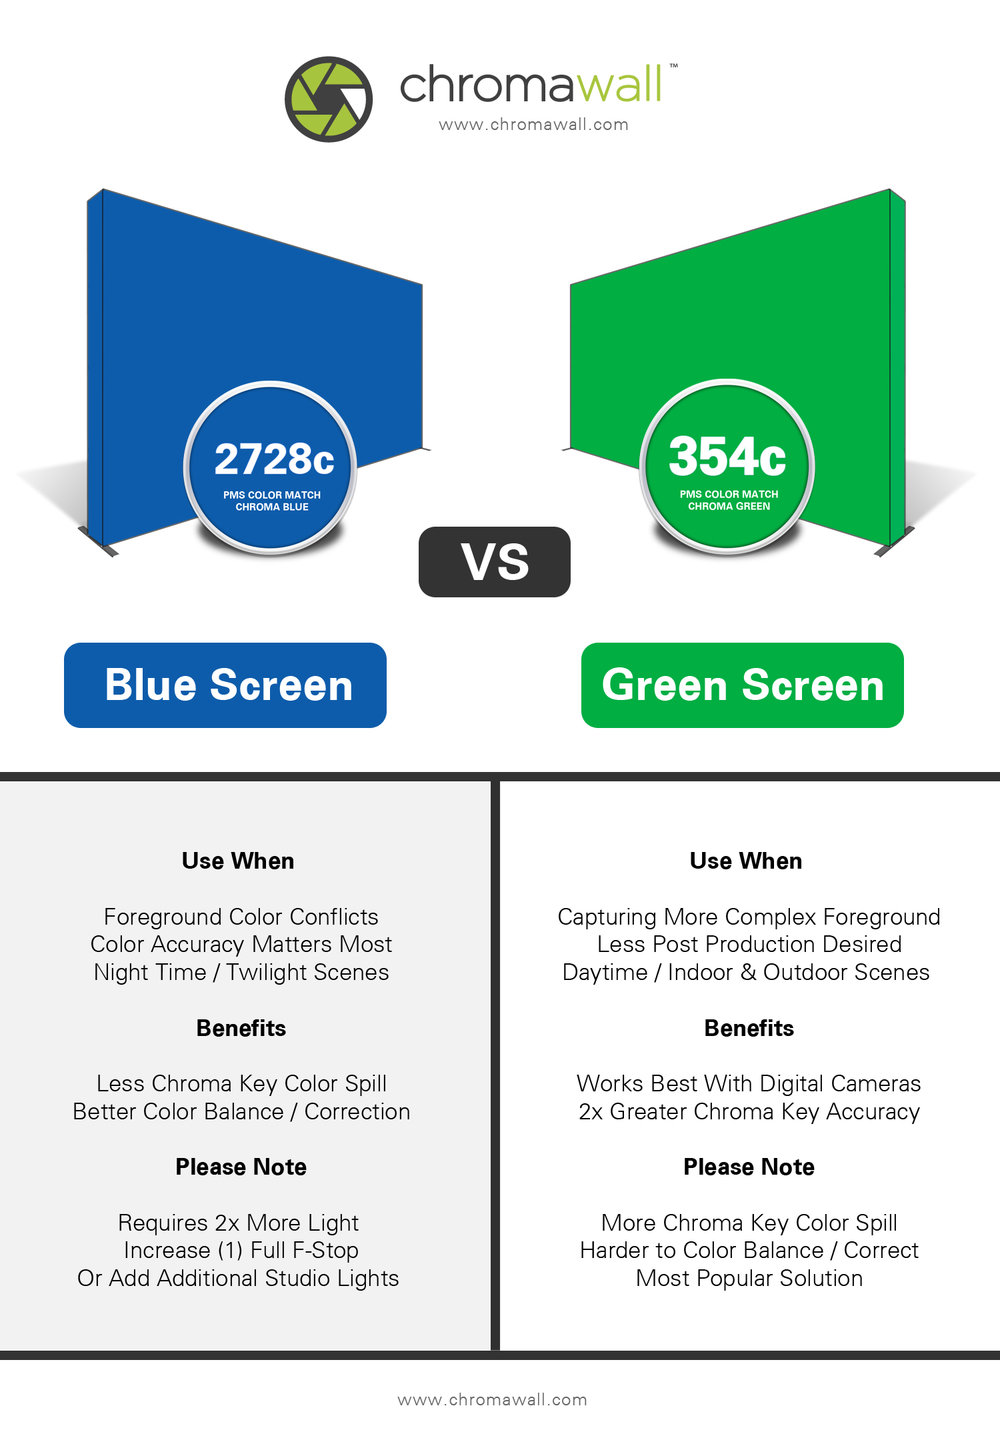 green screen vs. blue screen facts